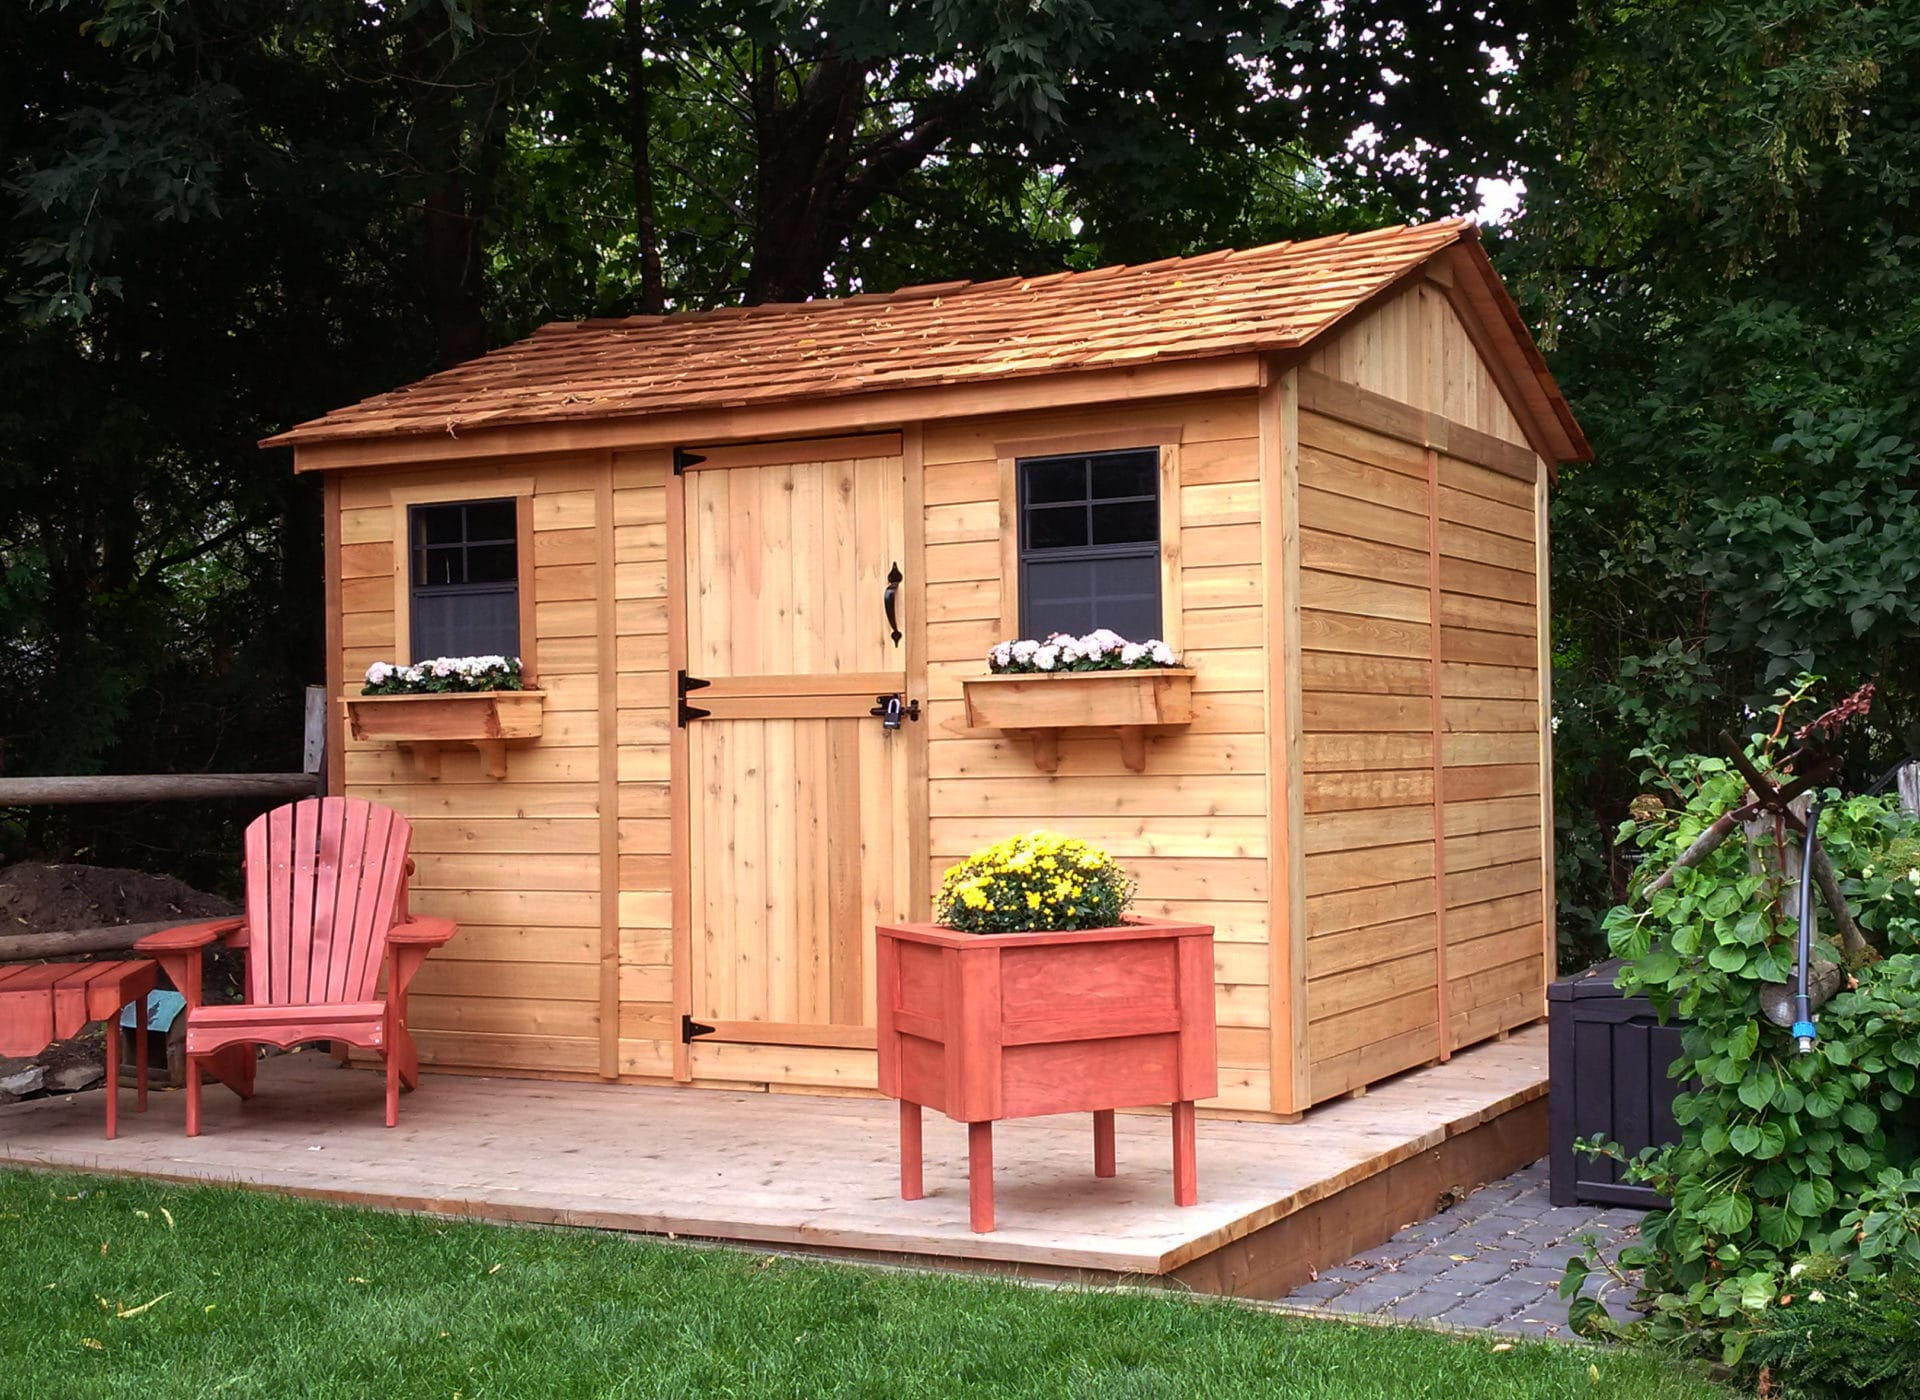 Cedar shed kits for sale outdoor living today for Garden shed for sale